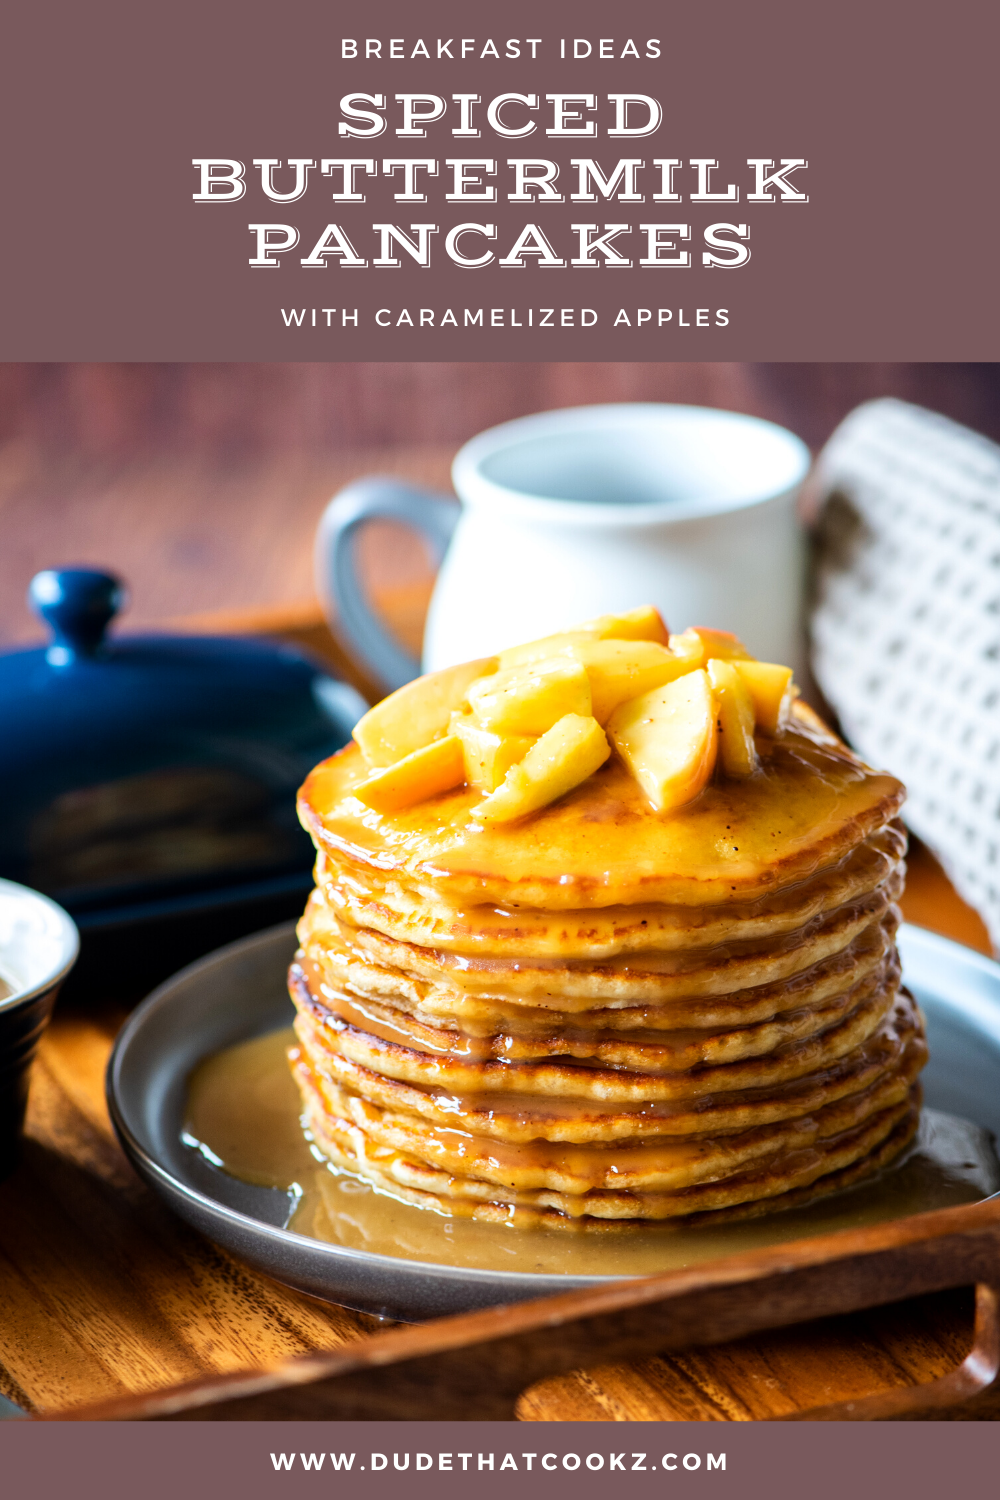 Spiced Buttermilk Pancakes with Caramelized Apples